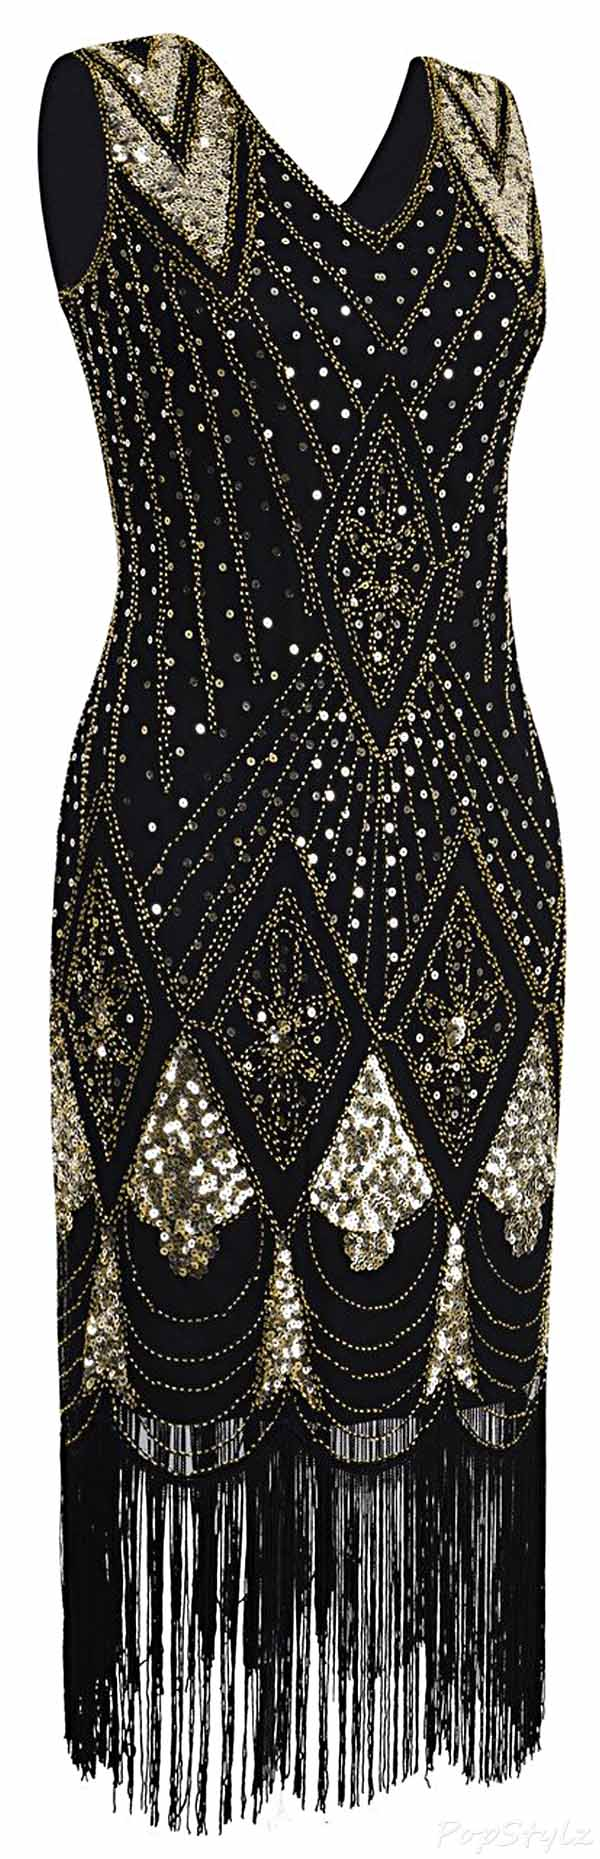 PrettyGuide 1920's Sequin Gatsby Flapper Dress